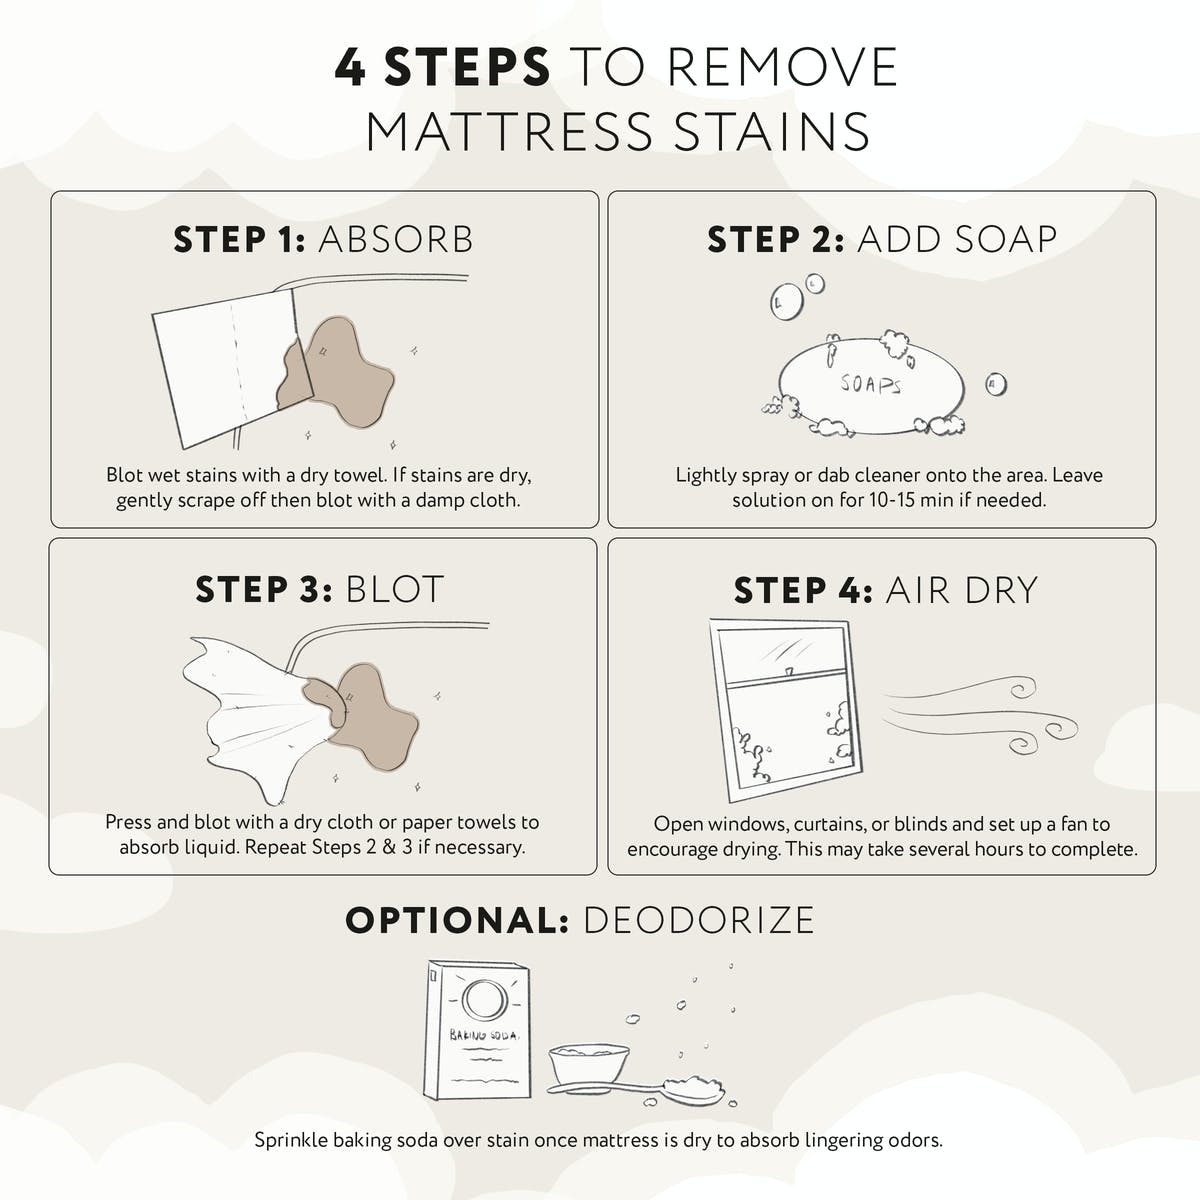 infographic explaining how to get rid of mattress stains